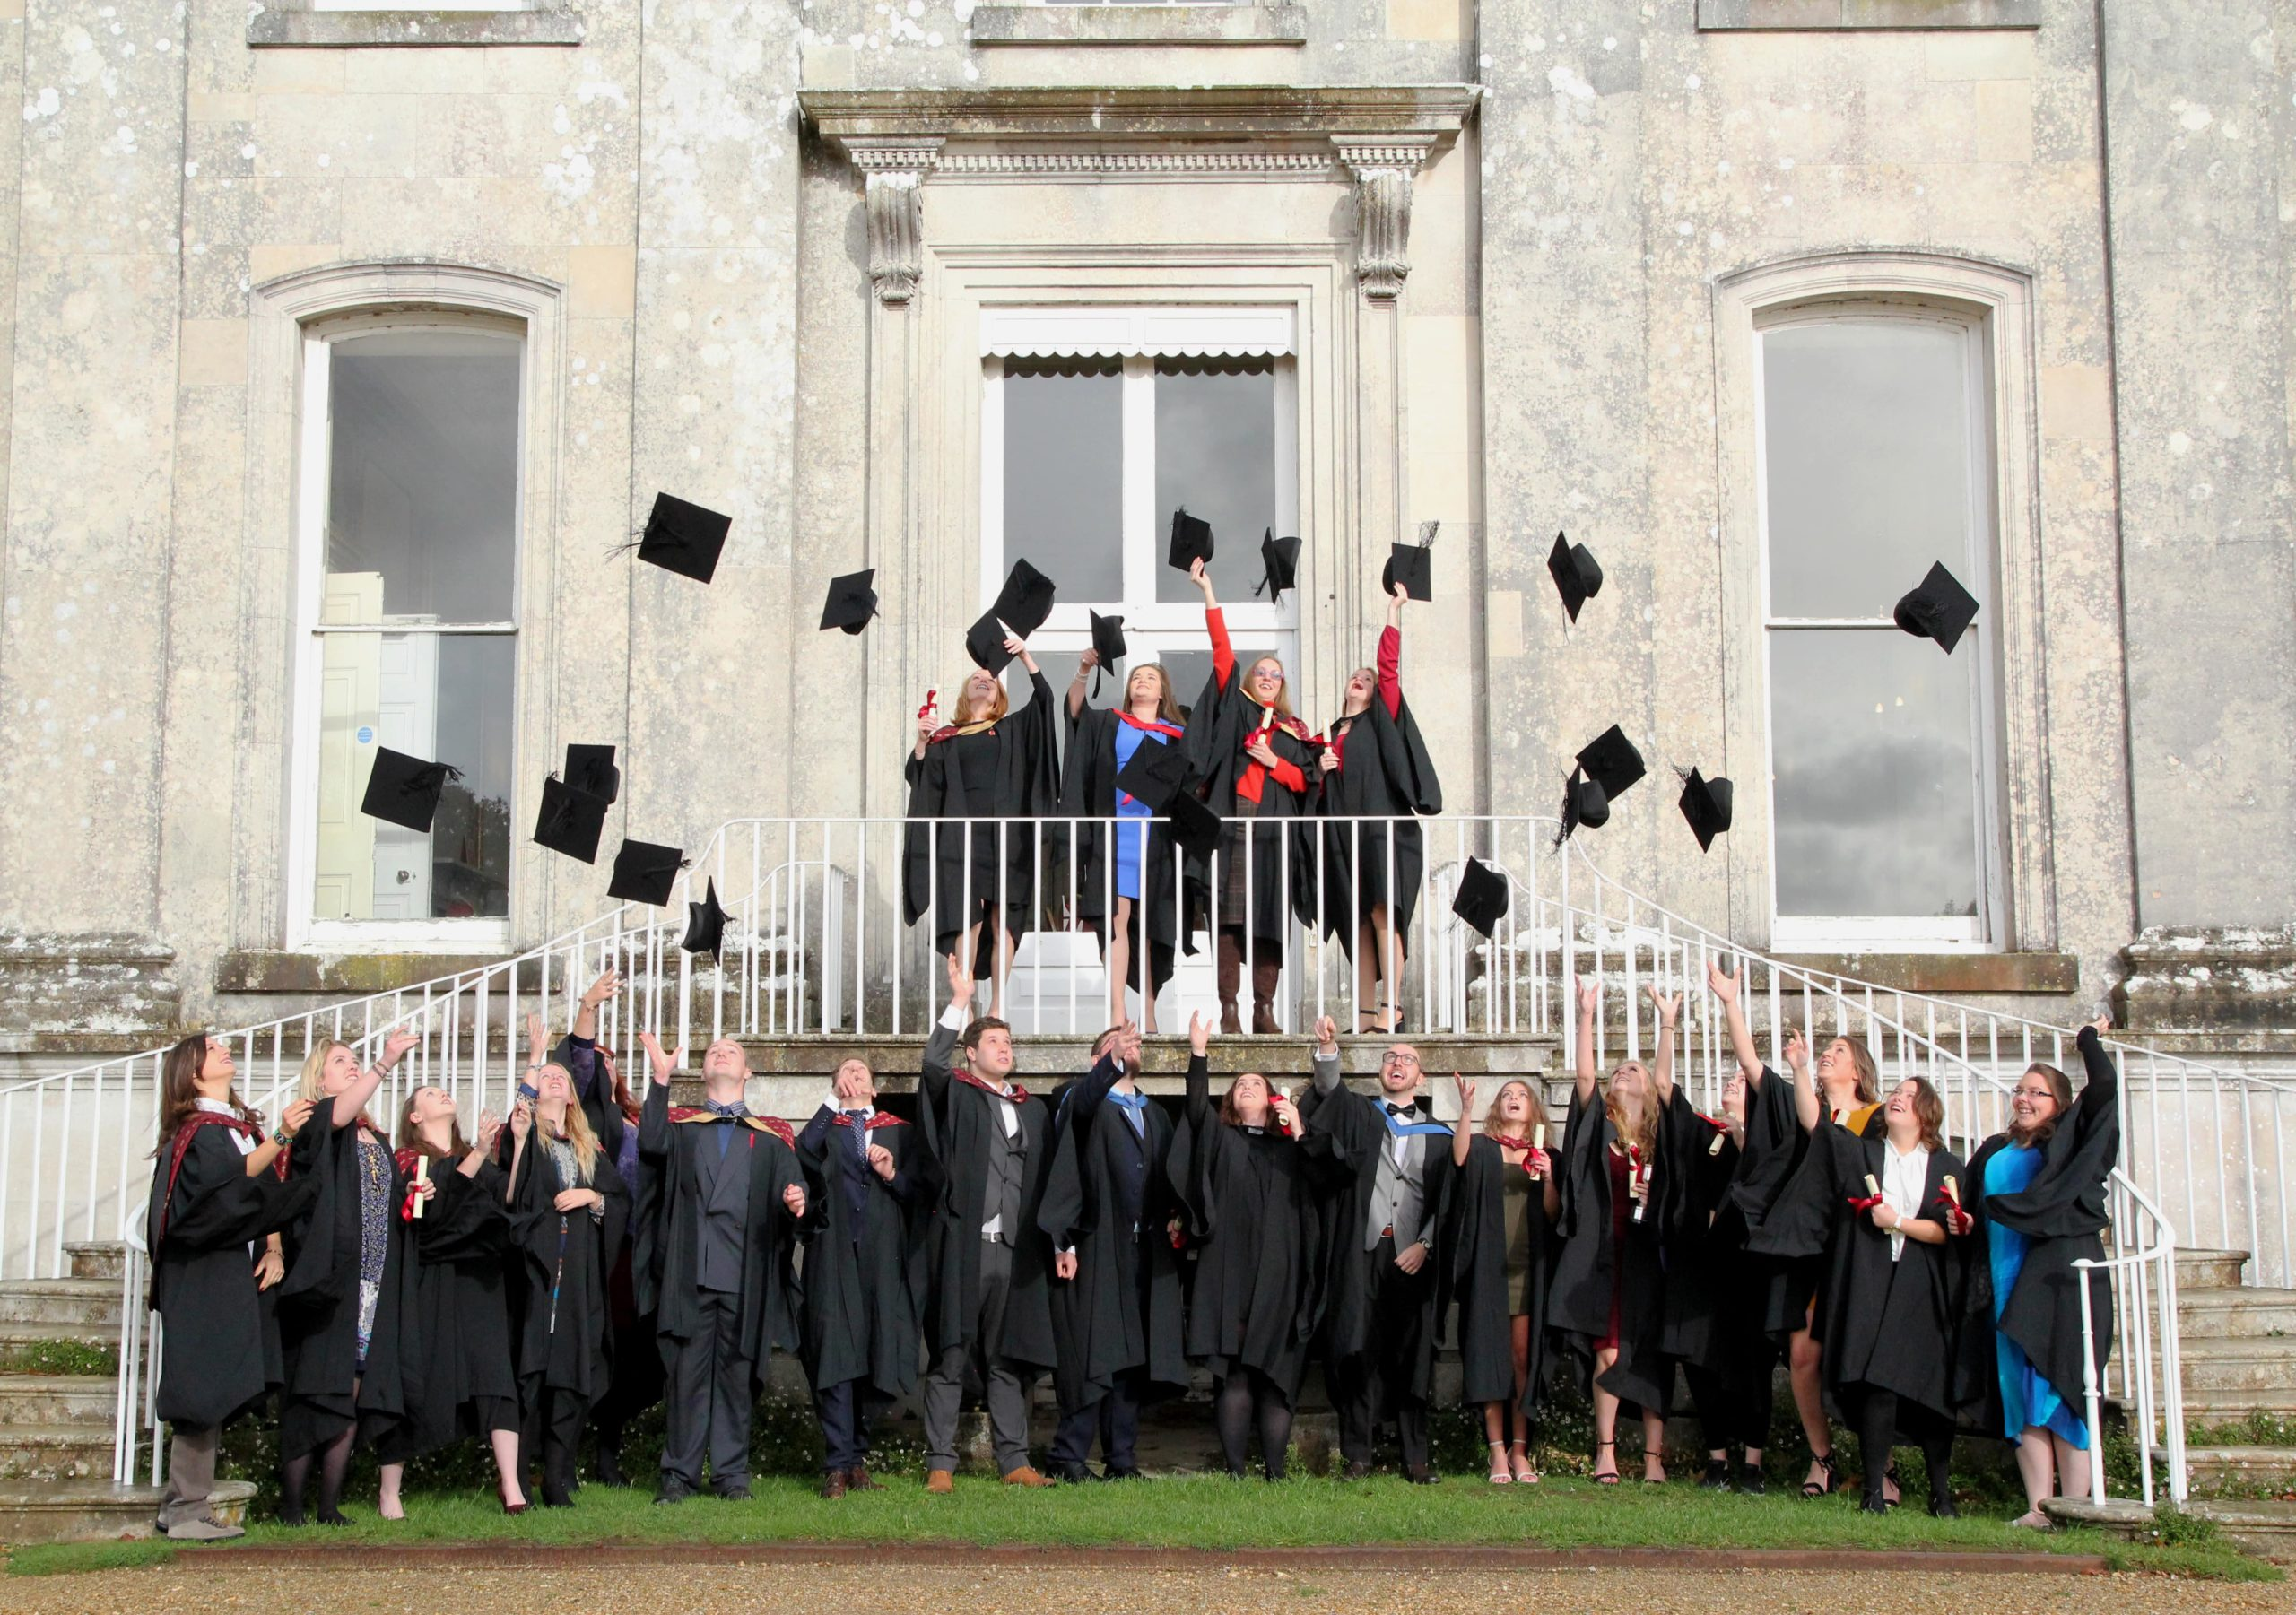 Group of students in graduation gowns throwing their graduation caps stood on the steps of the back of the Main House at Kingston Maurward